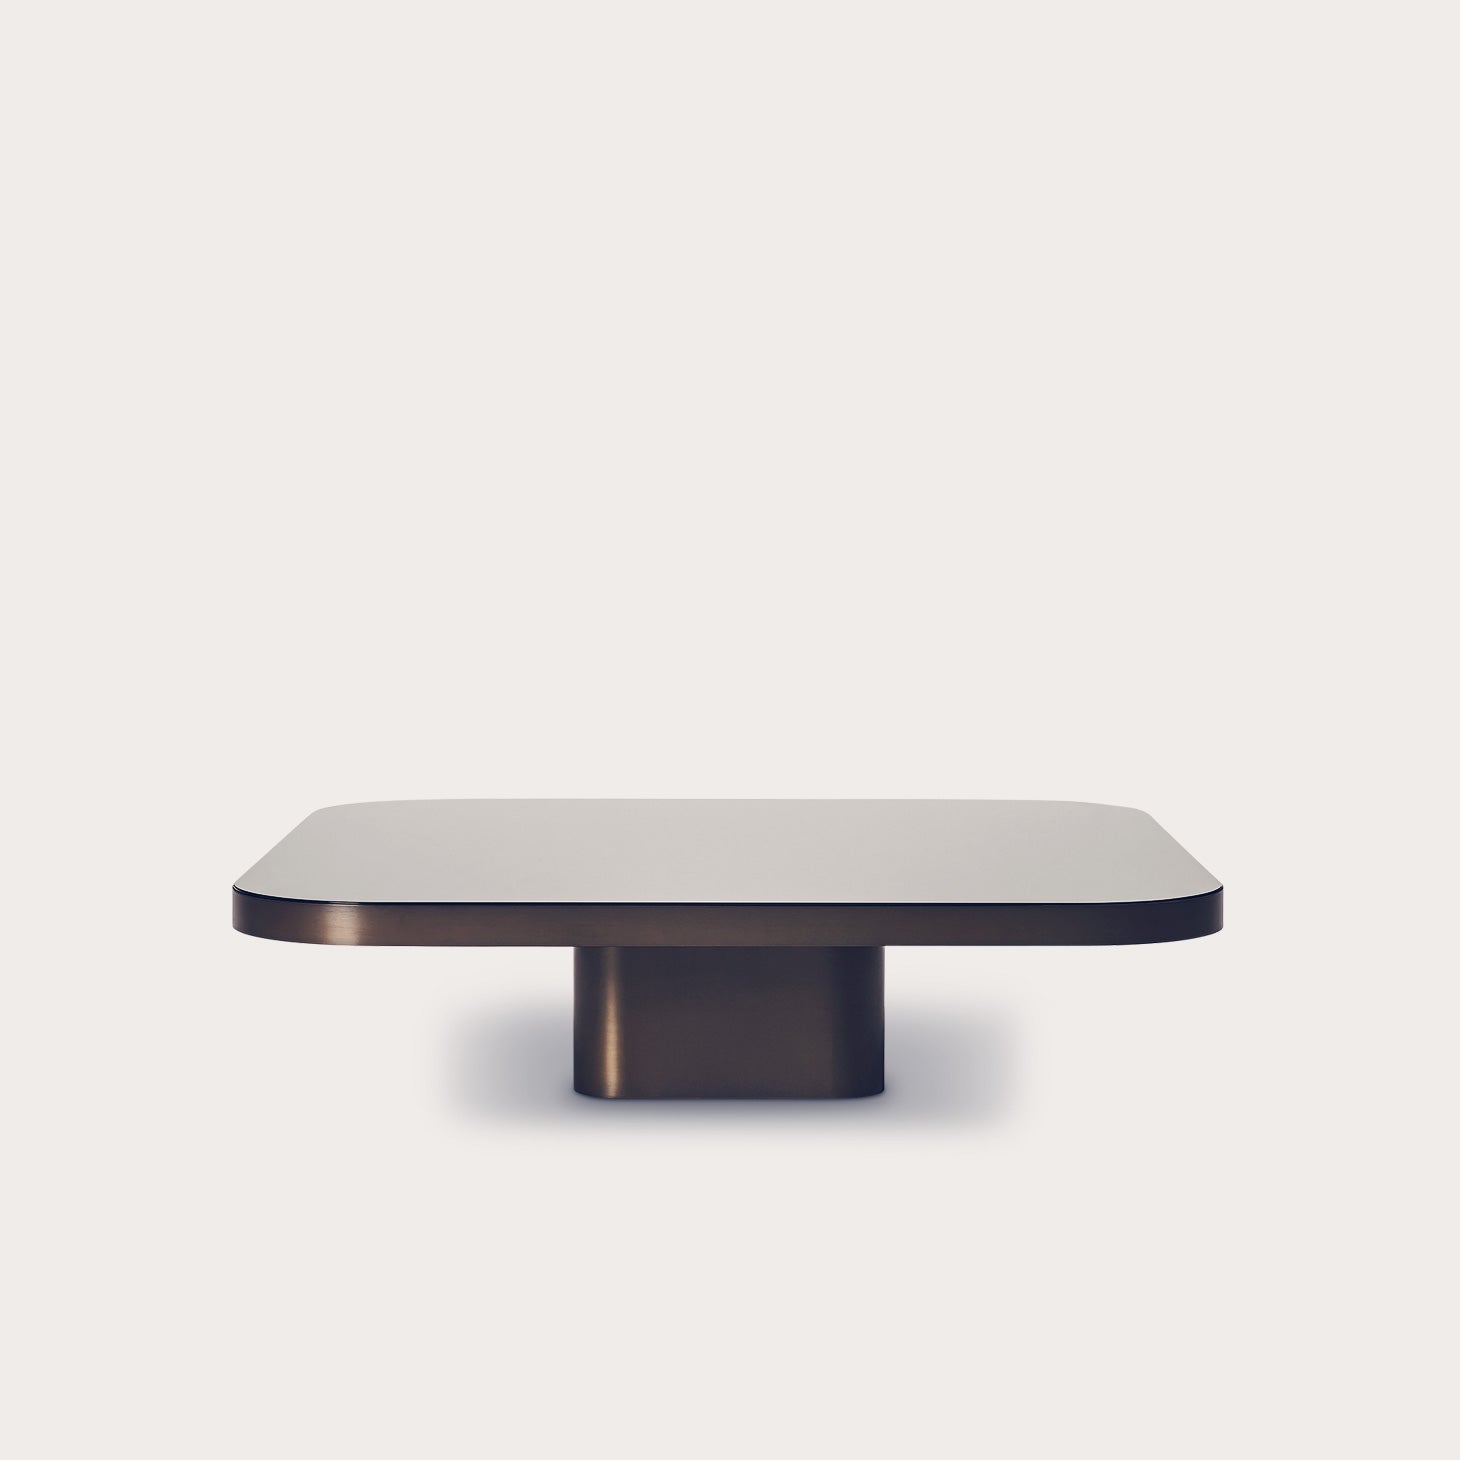 Bow Coffee Table No.5 Tables Guilherme Torres Designer Furniture Sku: 001-230-10240